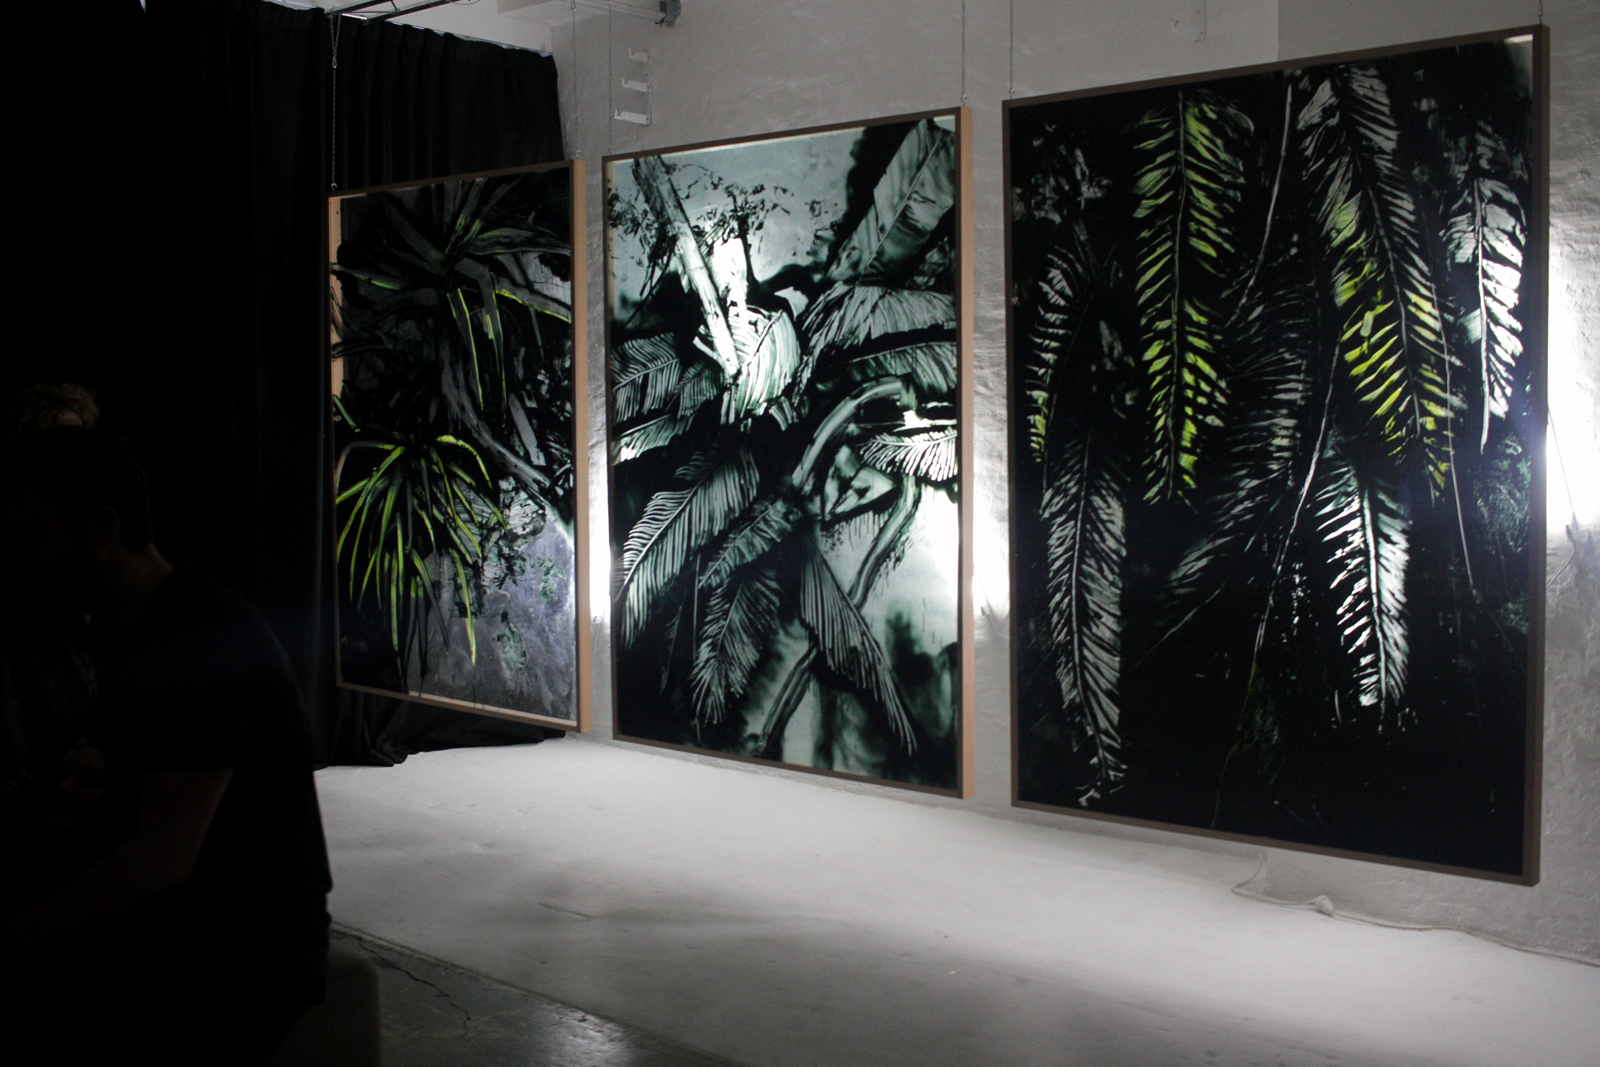 Berlin Plant I, II and III 2016 by  Hiroyasu Tsuri /TWOONE Shadow of a Truth - co-curated with Adi Yaakov -  48 Stunden Neukölln  festival 2017 at  Studio Cherie